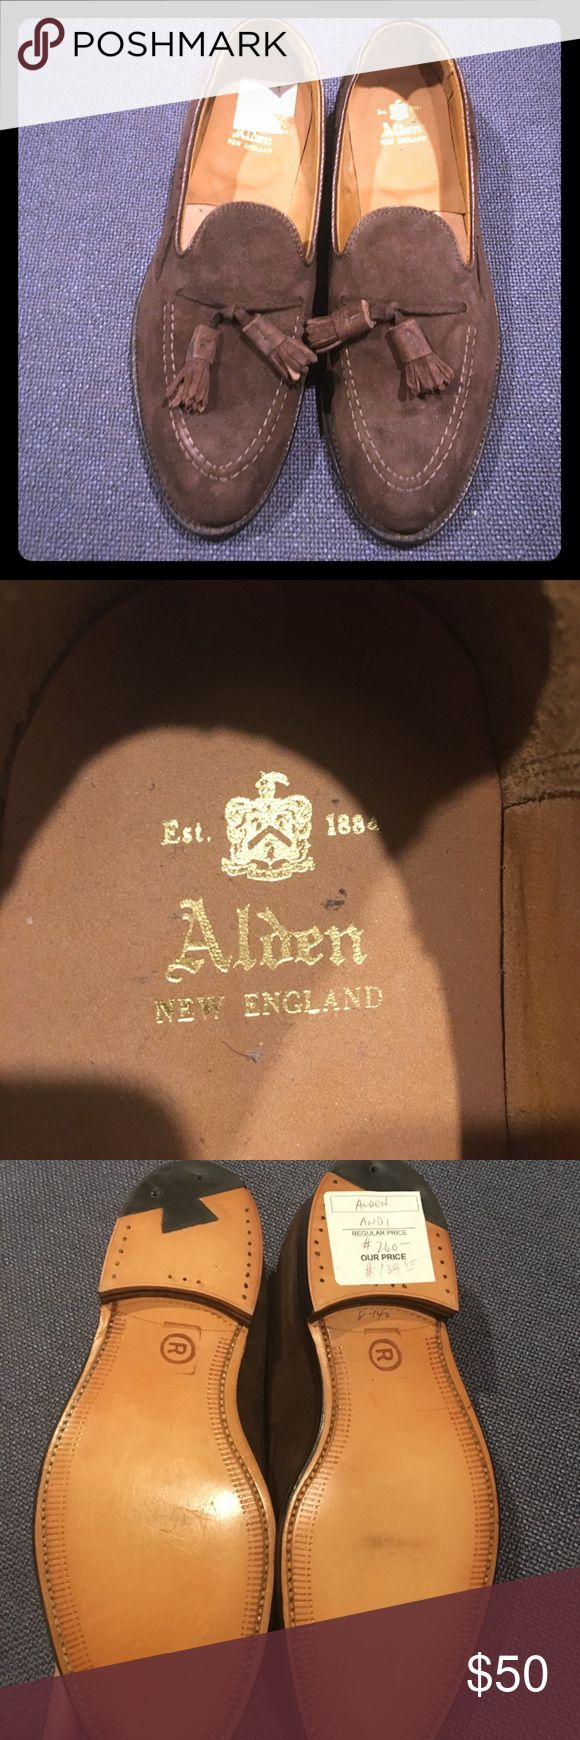 Alden of New England Brown Suede Tassel Loafers Alden New England Brown Suede Tassel Loafers- very classy and made by famous shoe manufacturer that is last of its kind in New England region. These Loafers normally go for $500+ - as shown on bottom of shoe, these shoes were on sale and ultimately purchased for $139.95. Some imperfections - small spot on top left of shoe, label peel as shown in right shoe, some writing and price tag on right bottom sole. Shoes still in excellent condition and…